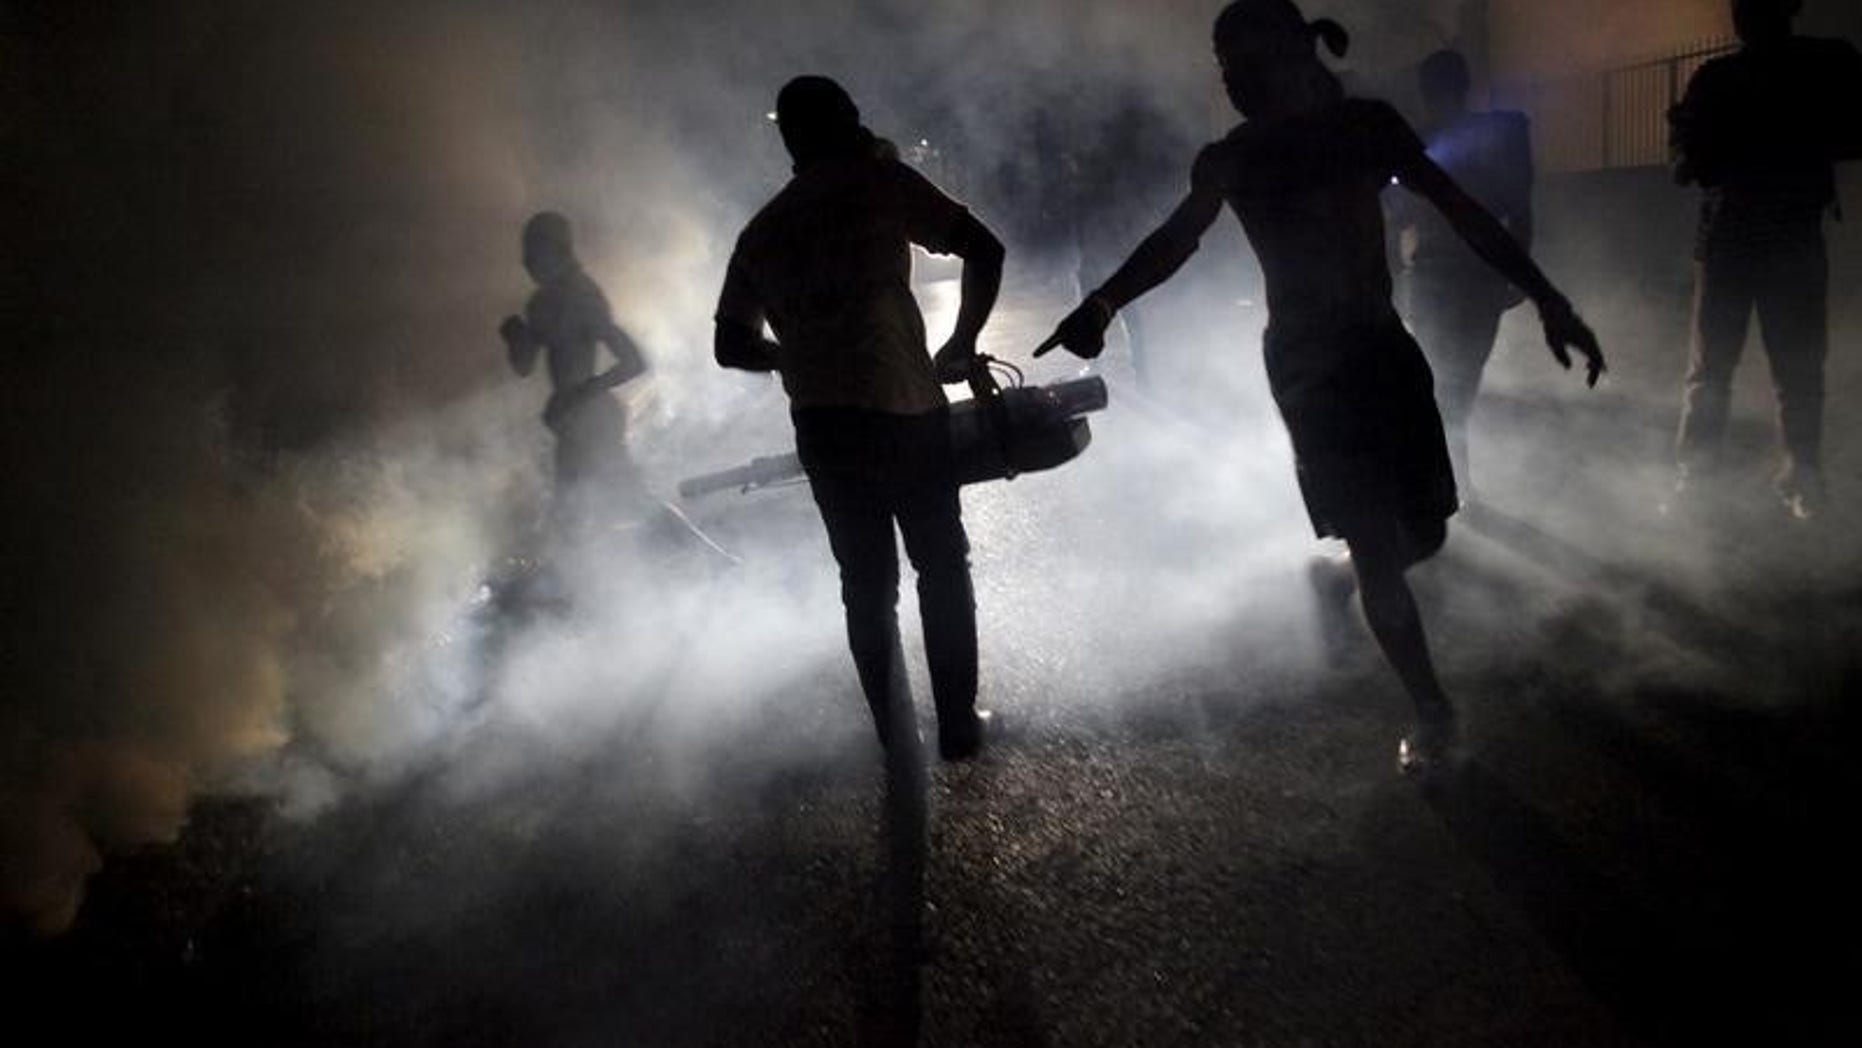 A worker of the Ministry of Public Health and Population fumigates in the street against mosquito breeding to prevent diseases such as malaria, dengue and Zika, during a fumigation campaign in Port-au-Prince, Haiti